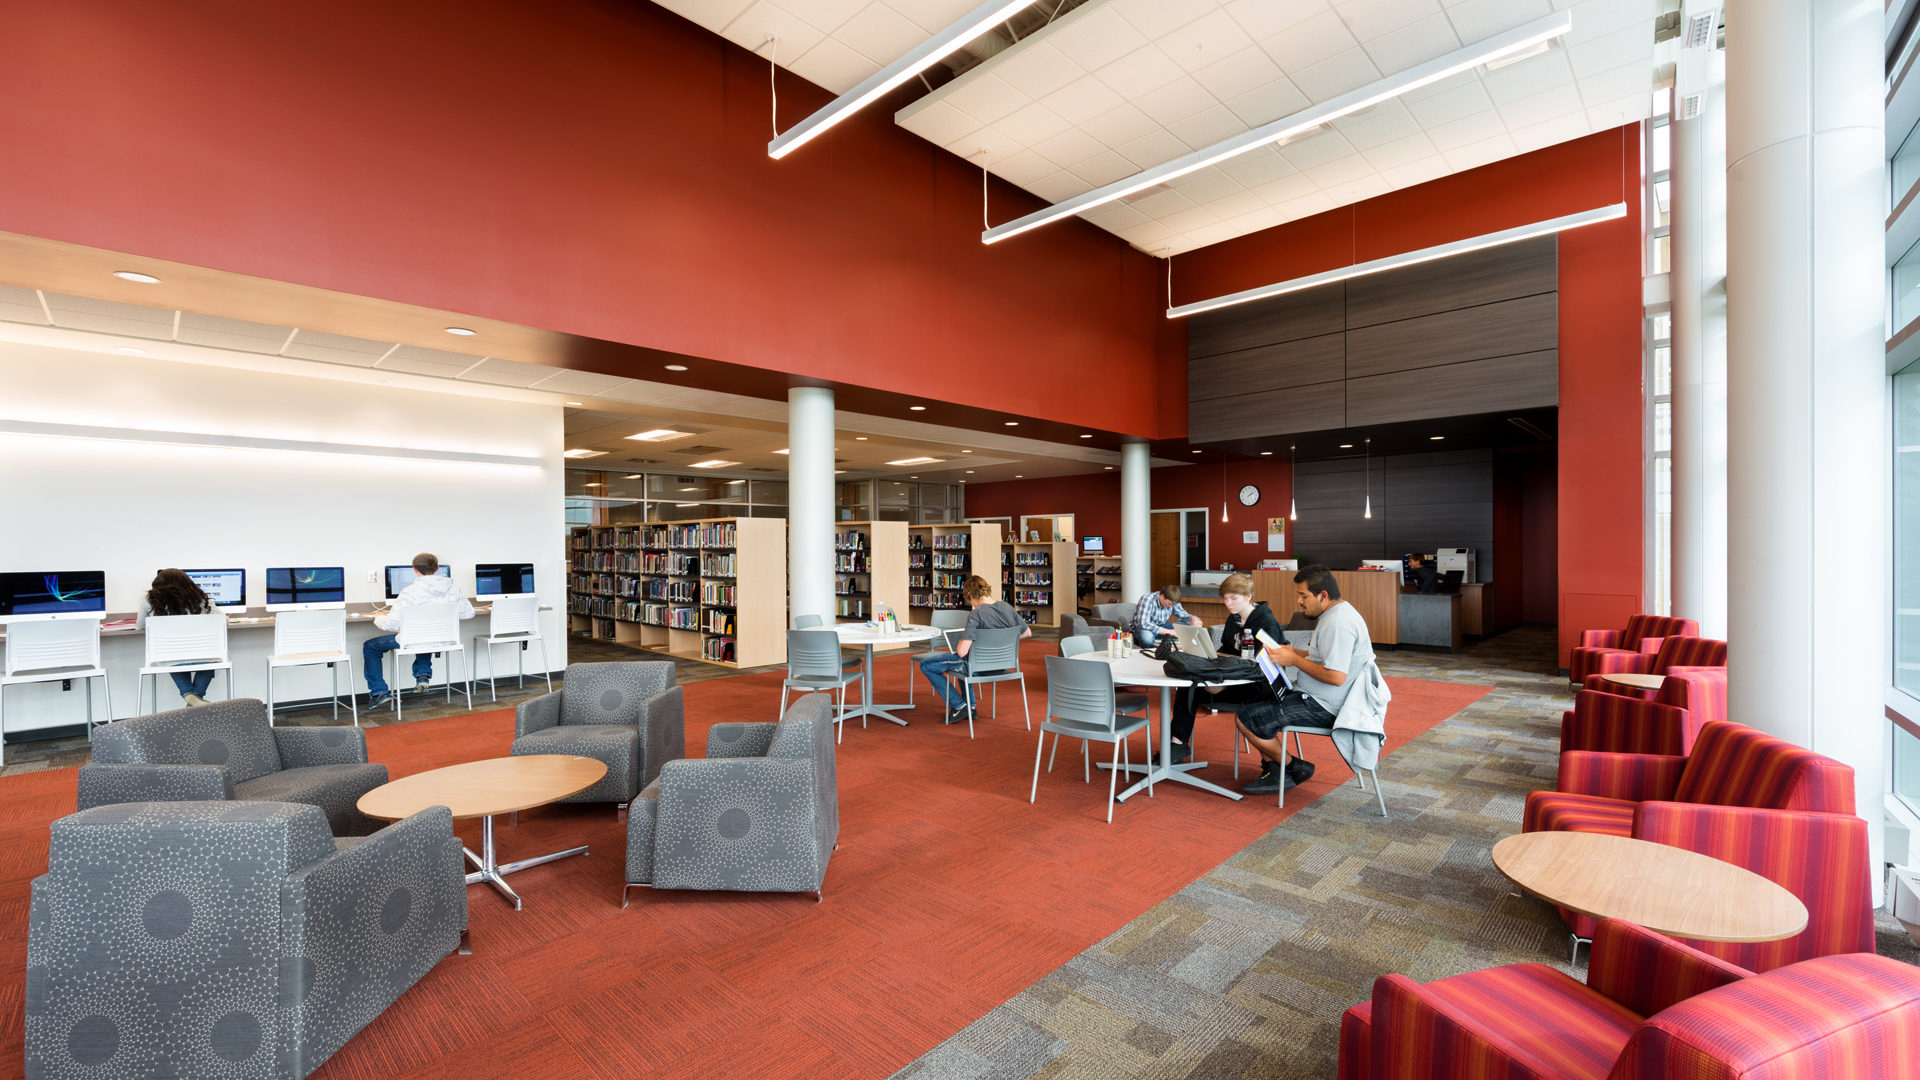 Watford City High School Watford City ND Library Open Study Area